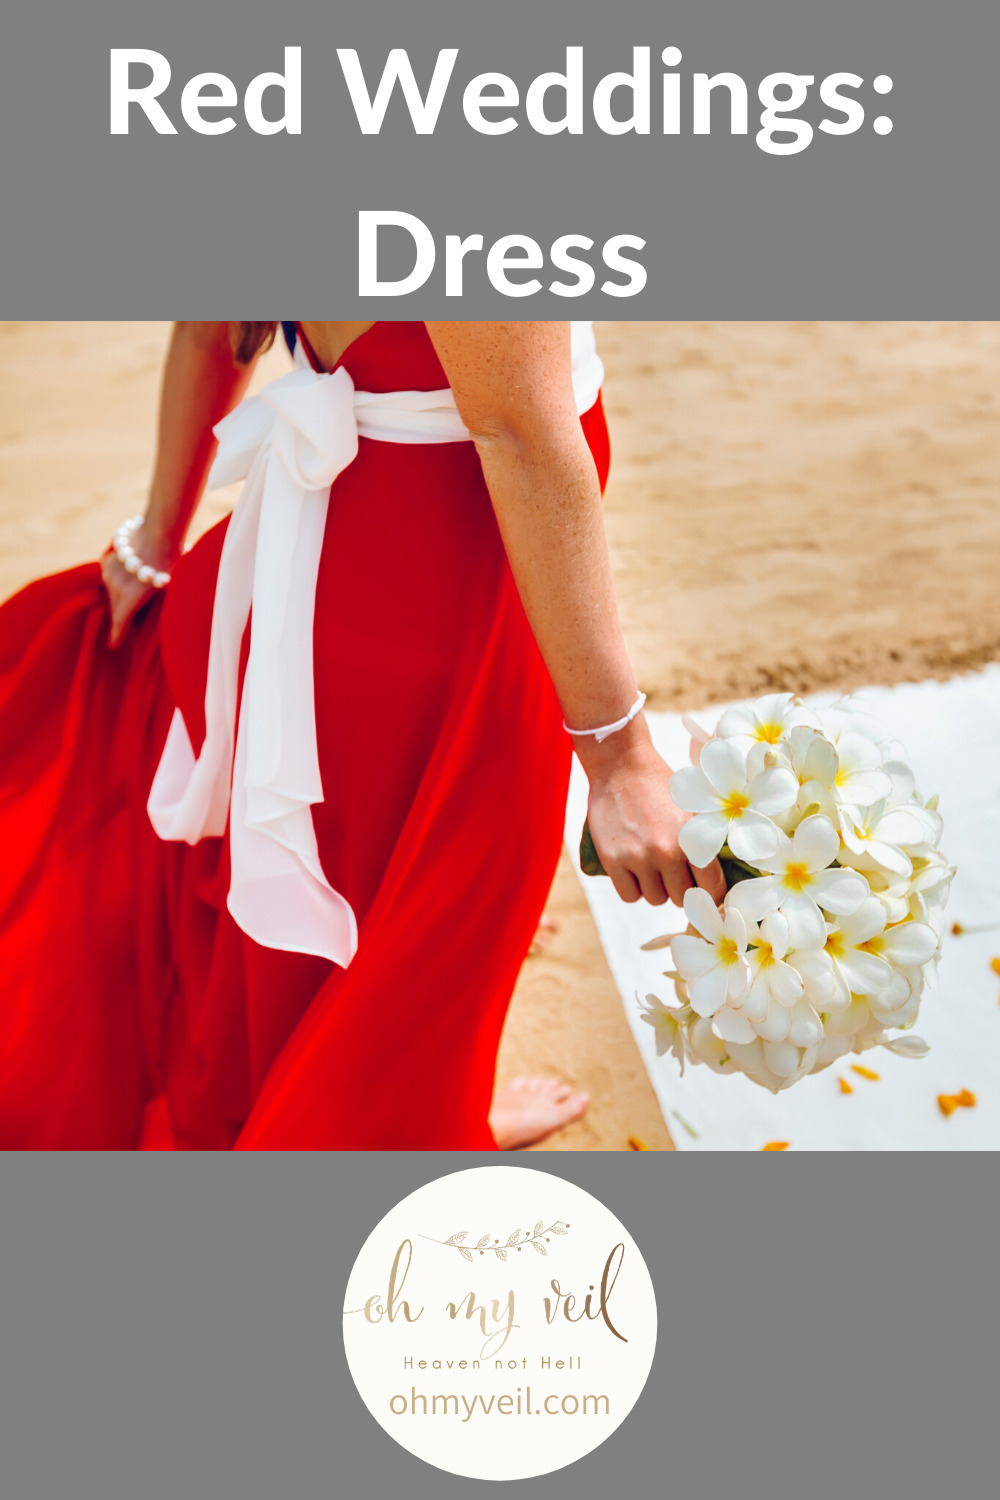 If you're wanting to have a red wedding dress to match your red wedding theme, it can be tricky! Luckily for you, I've compiled a list of everything you need to throw a perfect red wedding. Check it out! #redweddings #redweddingstheme #redweddingsdress #redweddingscake #redweddingsideas #ohmyveilblog